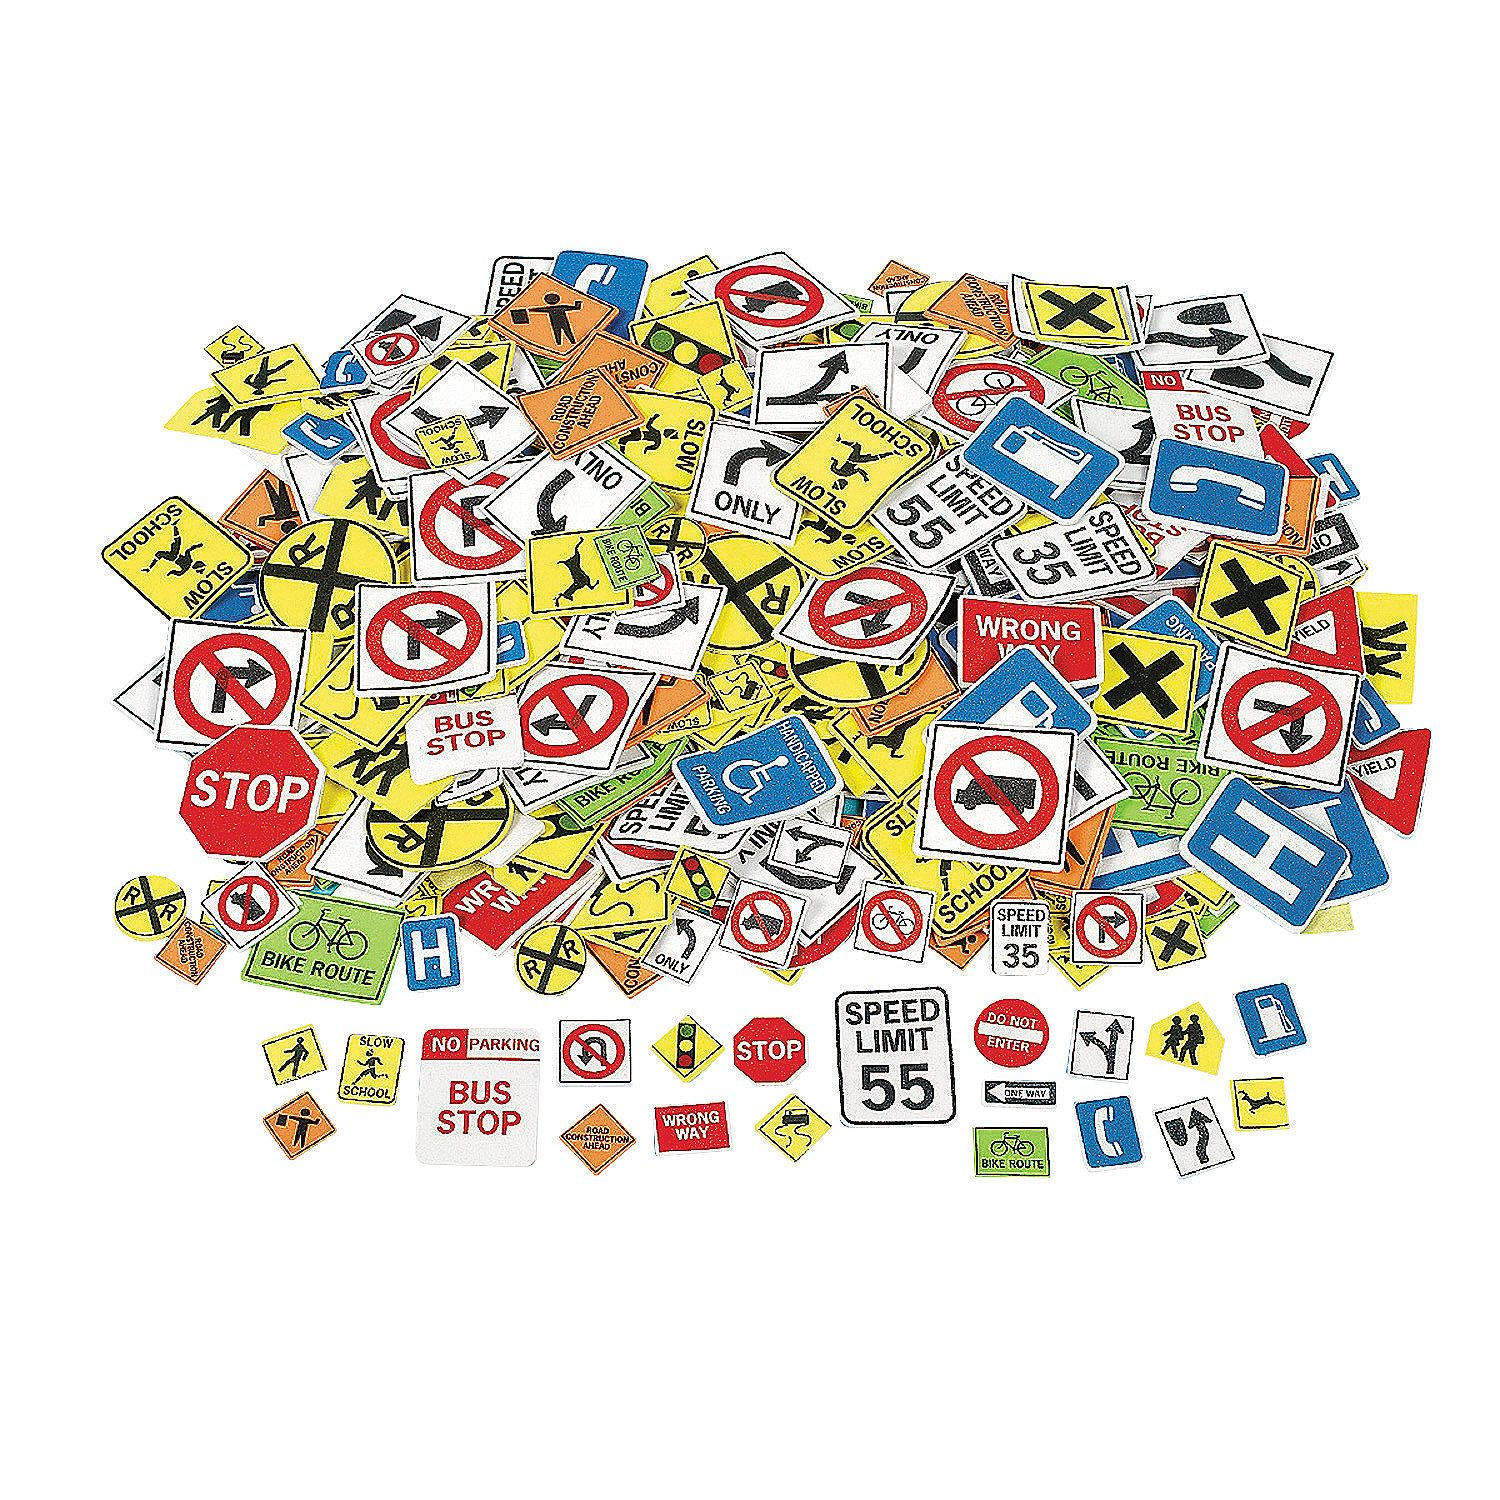 Fabulous Foam Self-Adhesive Safety Signs Shapes ...